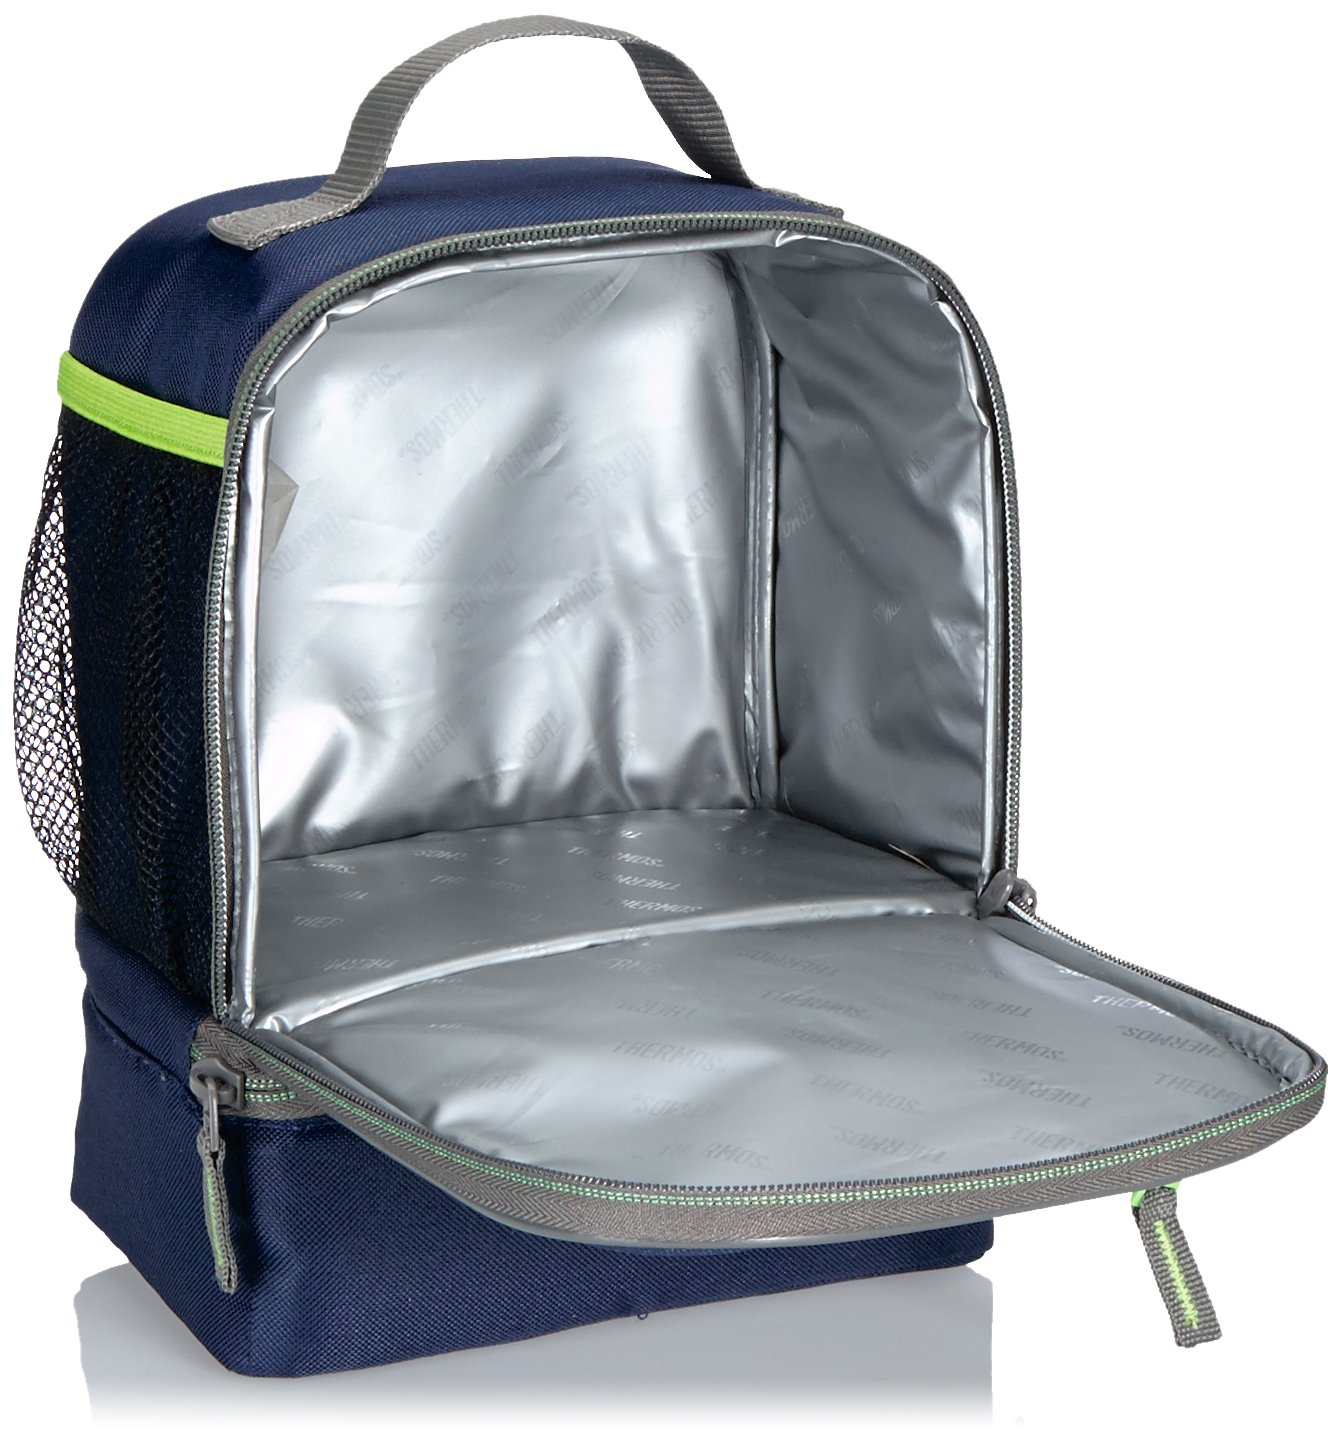 494f60910b36bc Thermos Radiance Dual Compartment Lunch Kit, Navy: Amazon.co.uk: Kitchen &  Home